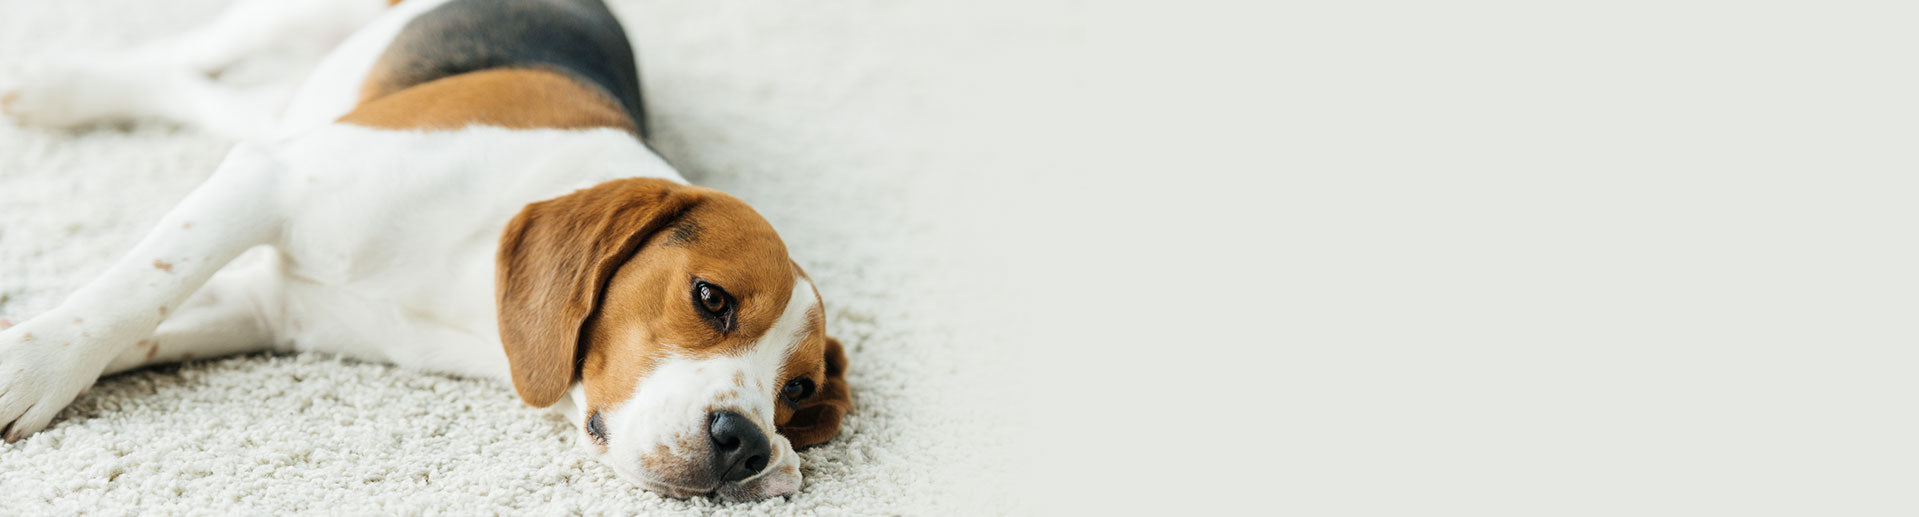 Signs to look for in dog seizures and safety precautions to take